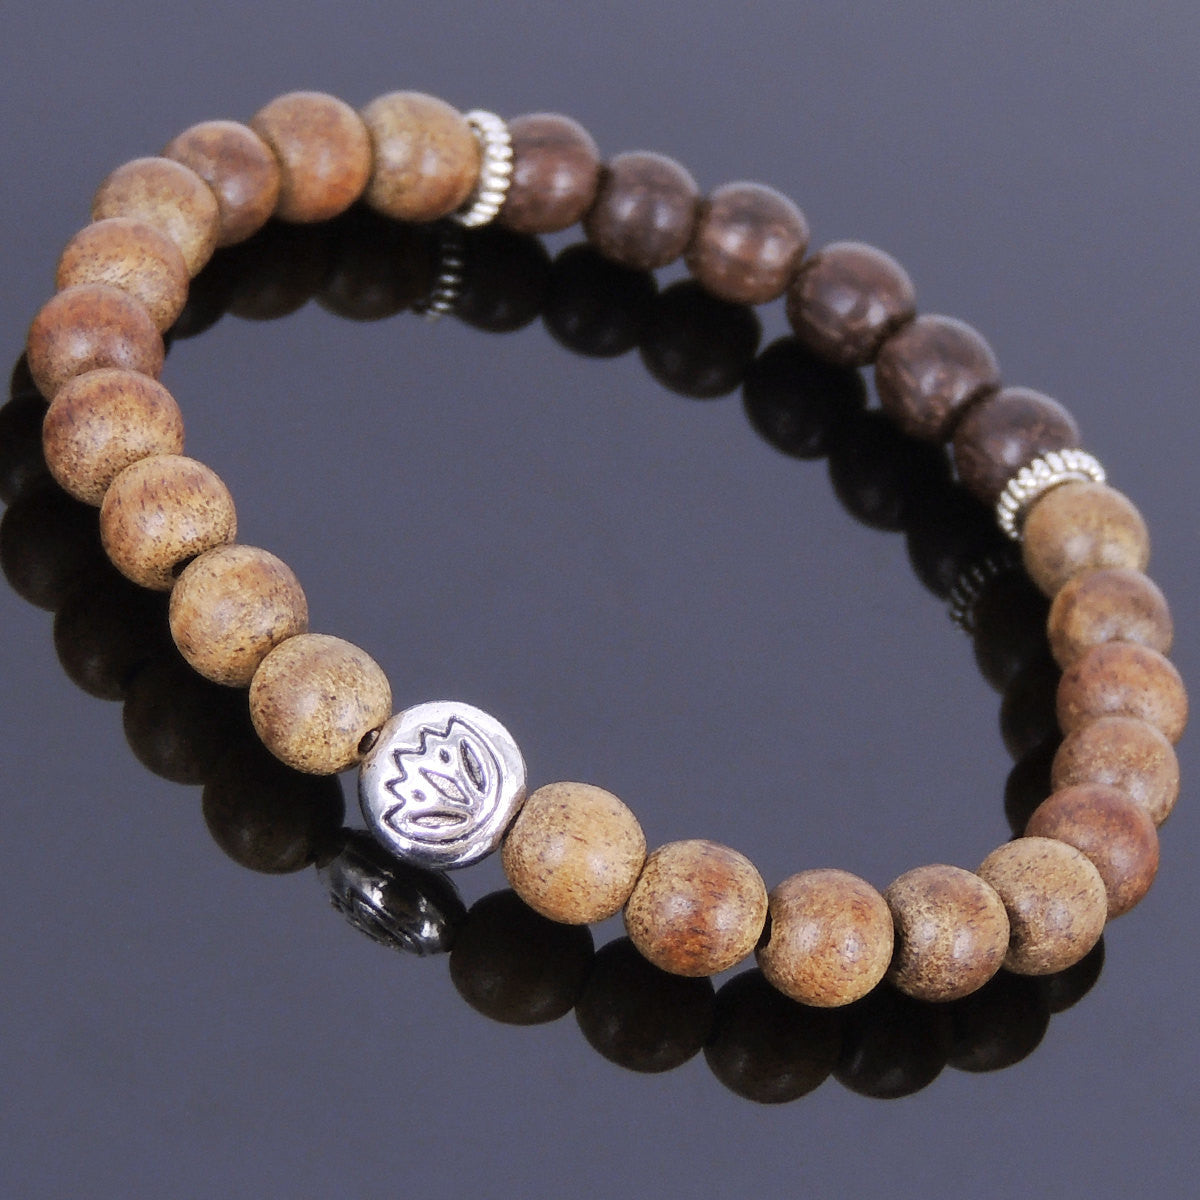 6.5mm Red Agarwood & White Sand Agarwood Healing Mala Bracelet with Tibetan Silver Lotus Bead & Spacers - Handmade by Gem & Silver AWB025